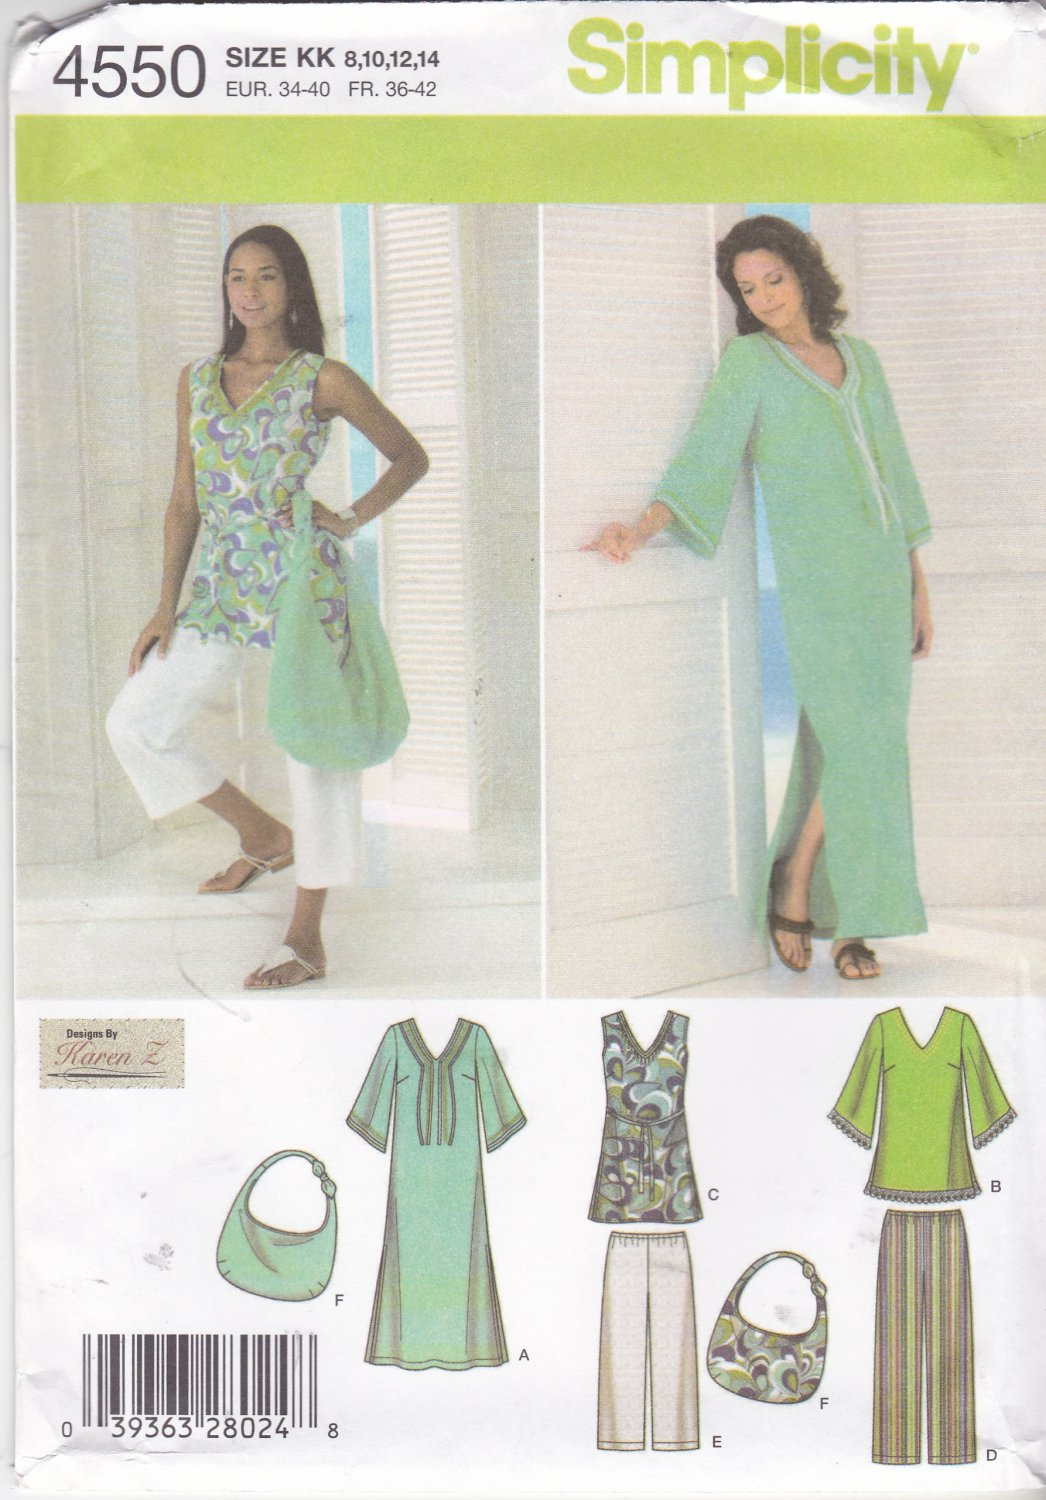 Simplicity Sewing Pattern 4550 Misses Size 8-14 Wardrobe Pants Dress Tunic Purse Capris Caftan